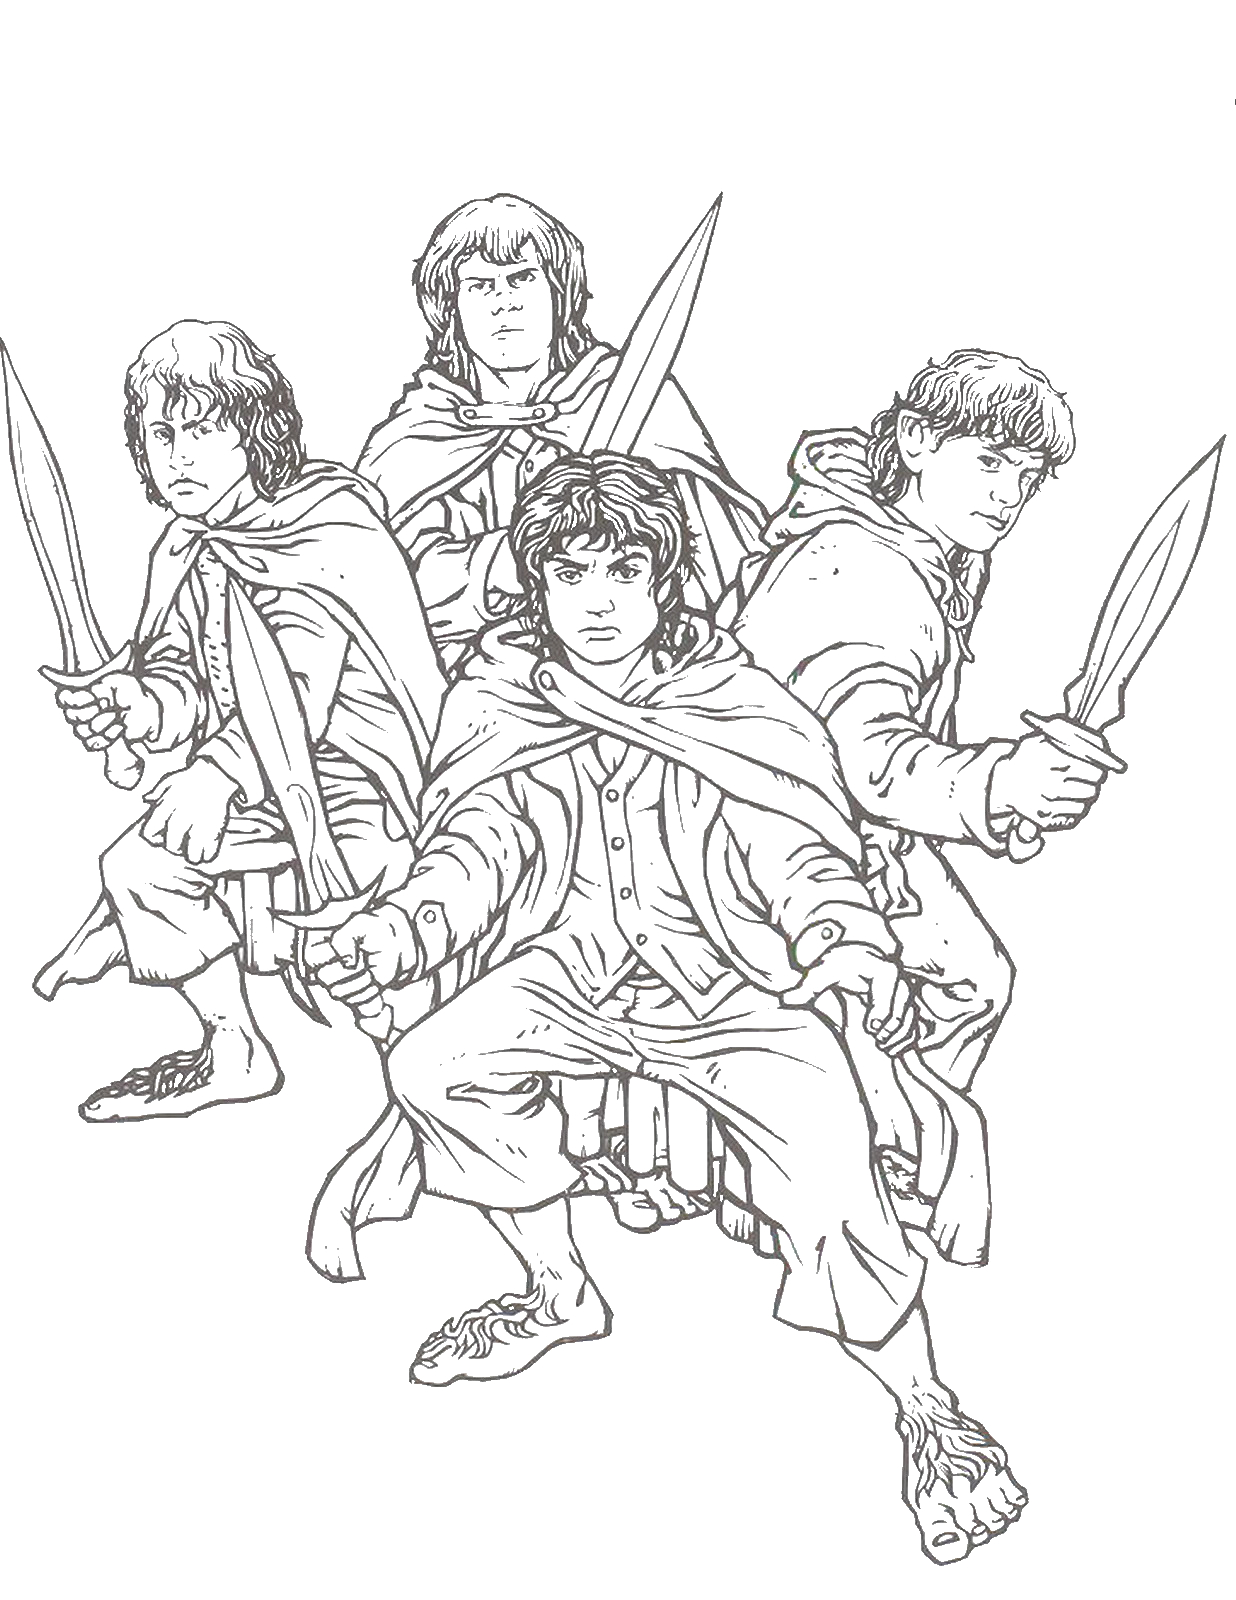 Lord Of the Rings Coloring Pages Free Lord Of the Rings Coloring Pages